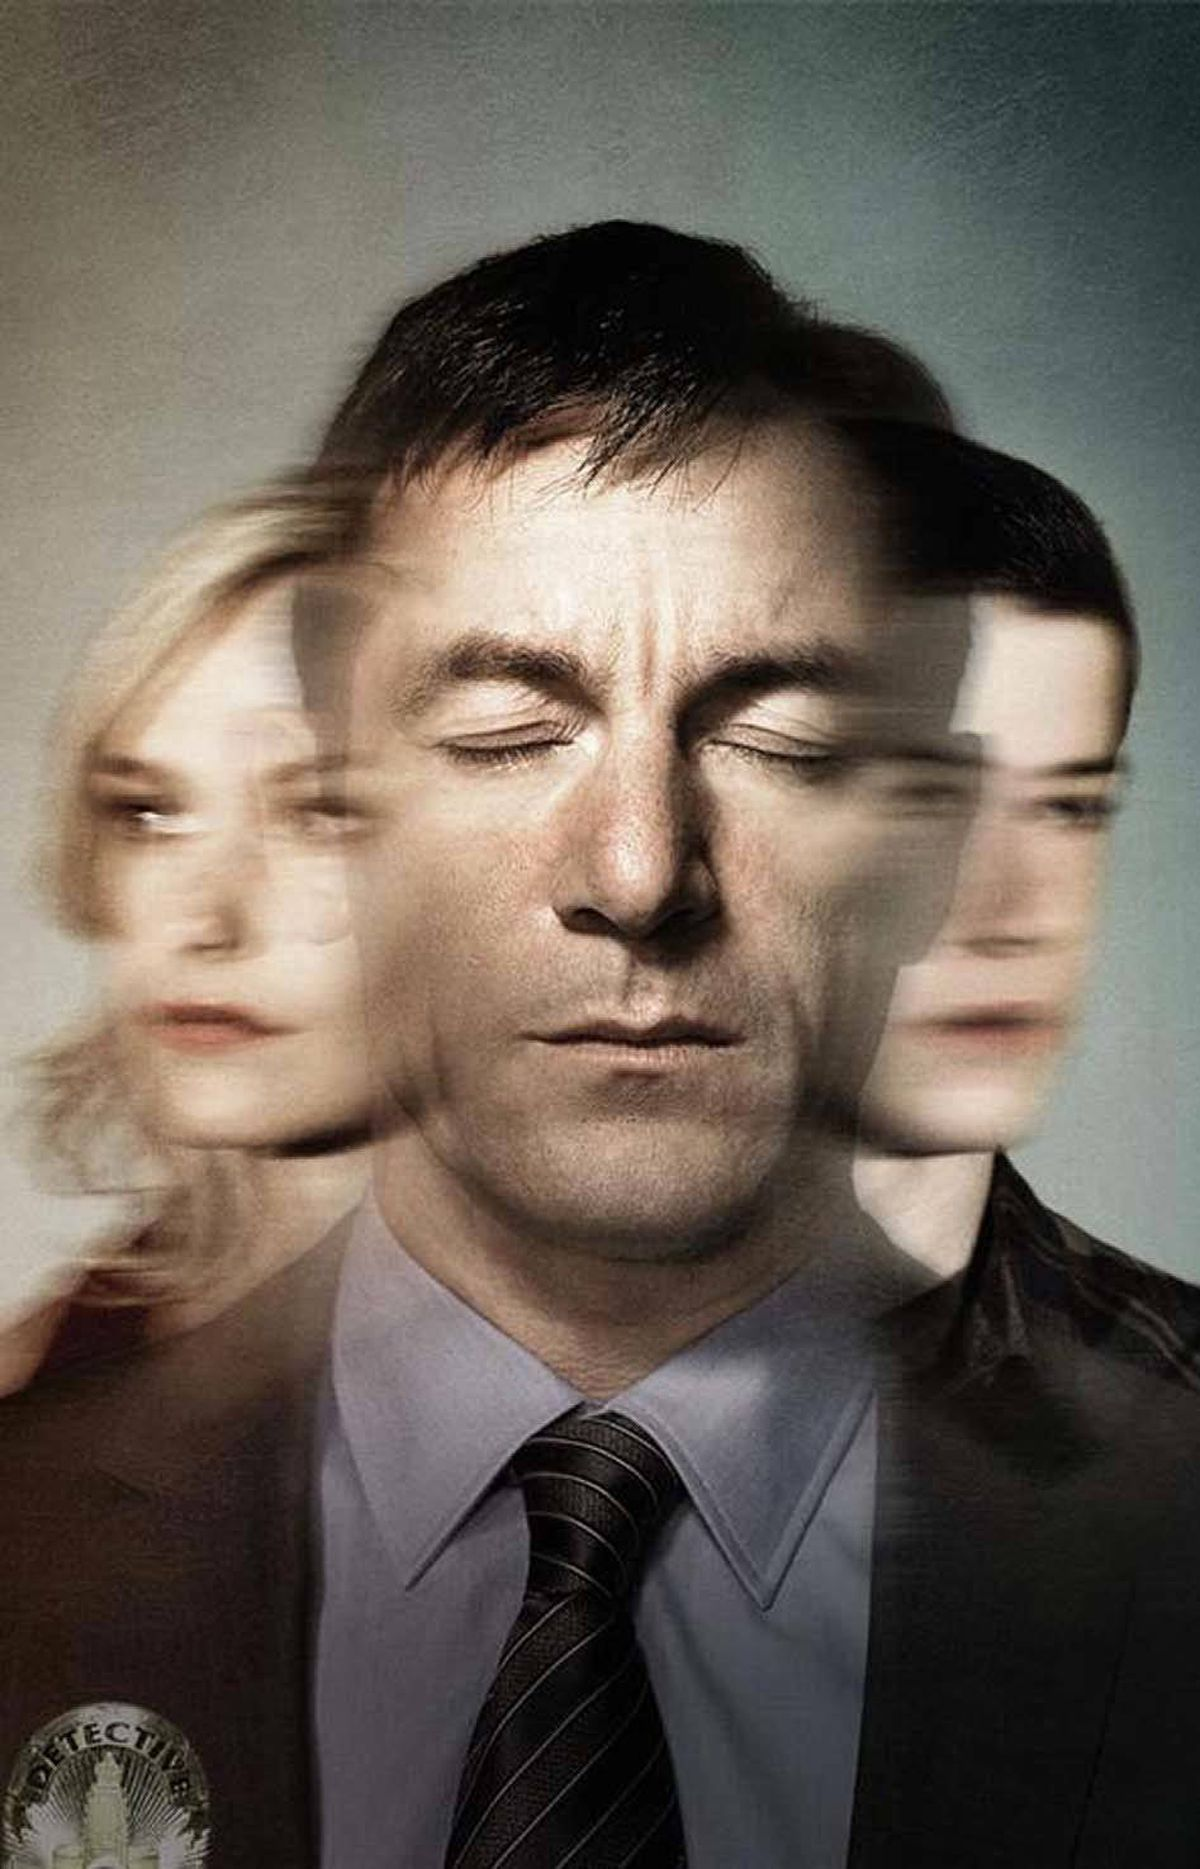 "DRAMA Awake NBC, Global, 10 p.m. Launched mid-March, the offbeat crime drama is one of several network series currently ""on the bubble,"" in TV parlance, which means the show's renewal or cancellation is a 50-50 proposition. The show's premise casts the sturdy English actor Jason Isaacs as police detective Michael Britten, who recovers from a horrific car accident to discover his wife Hannah (Laura Allen) survived the crash but his teen son Rex (Dylan Minnette) perished. But when Michael goes to sleep, he enters an alternate reality where his wife died and his son survived. In tonight's new episode, Michael has a disturbing dream affecting his ability to switch back and forth between the two worlds, which draws the attention of not particularly charitable police captain, played by former ER regular Laura Innes."